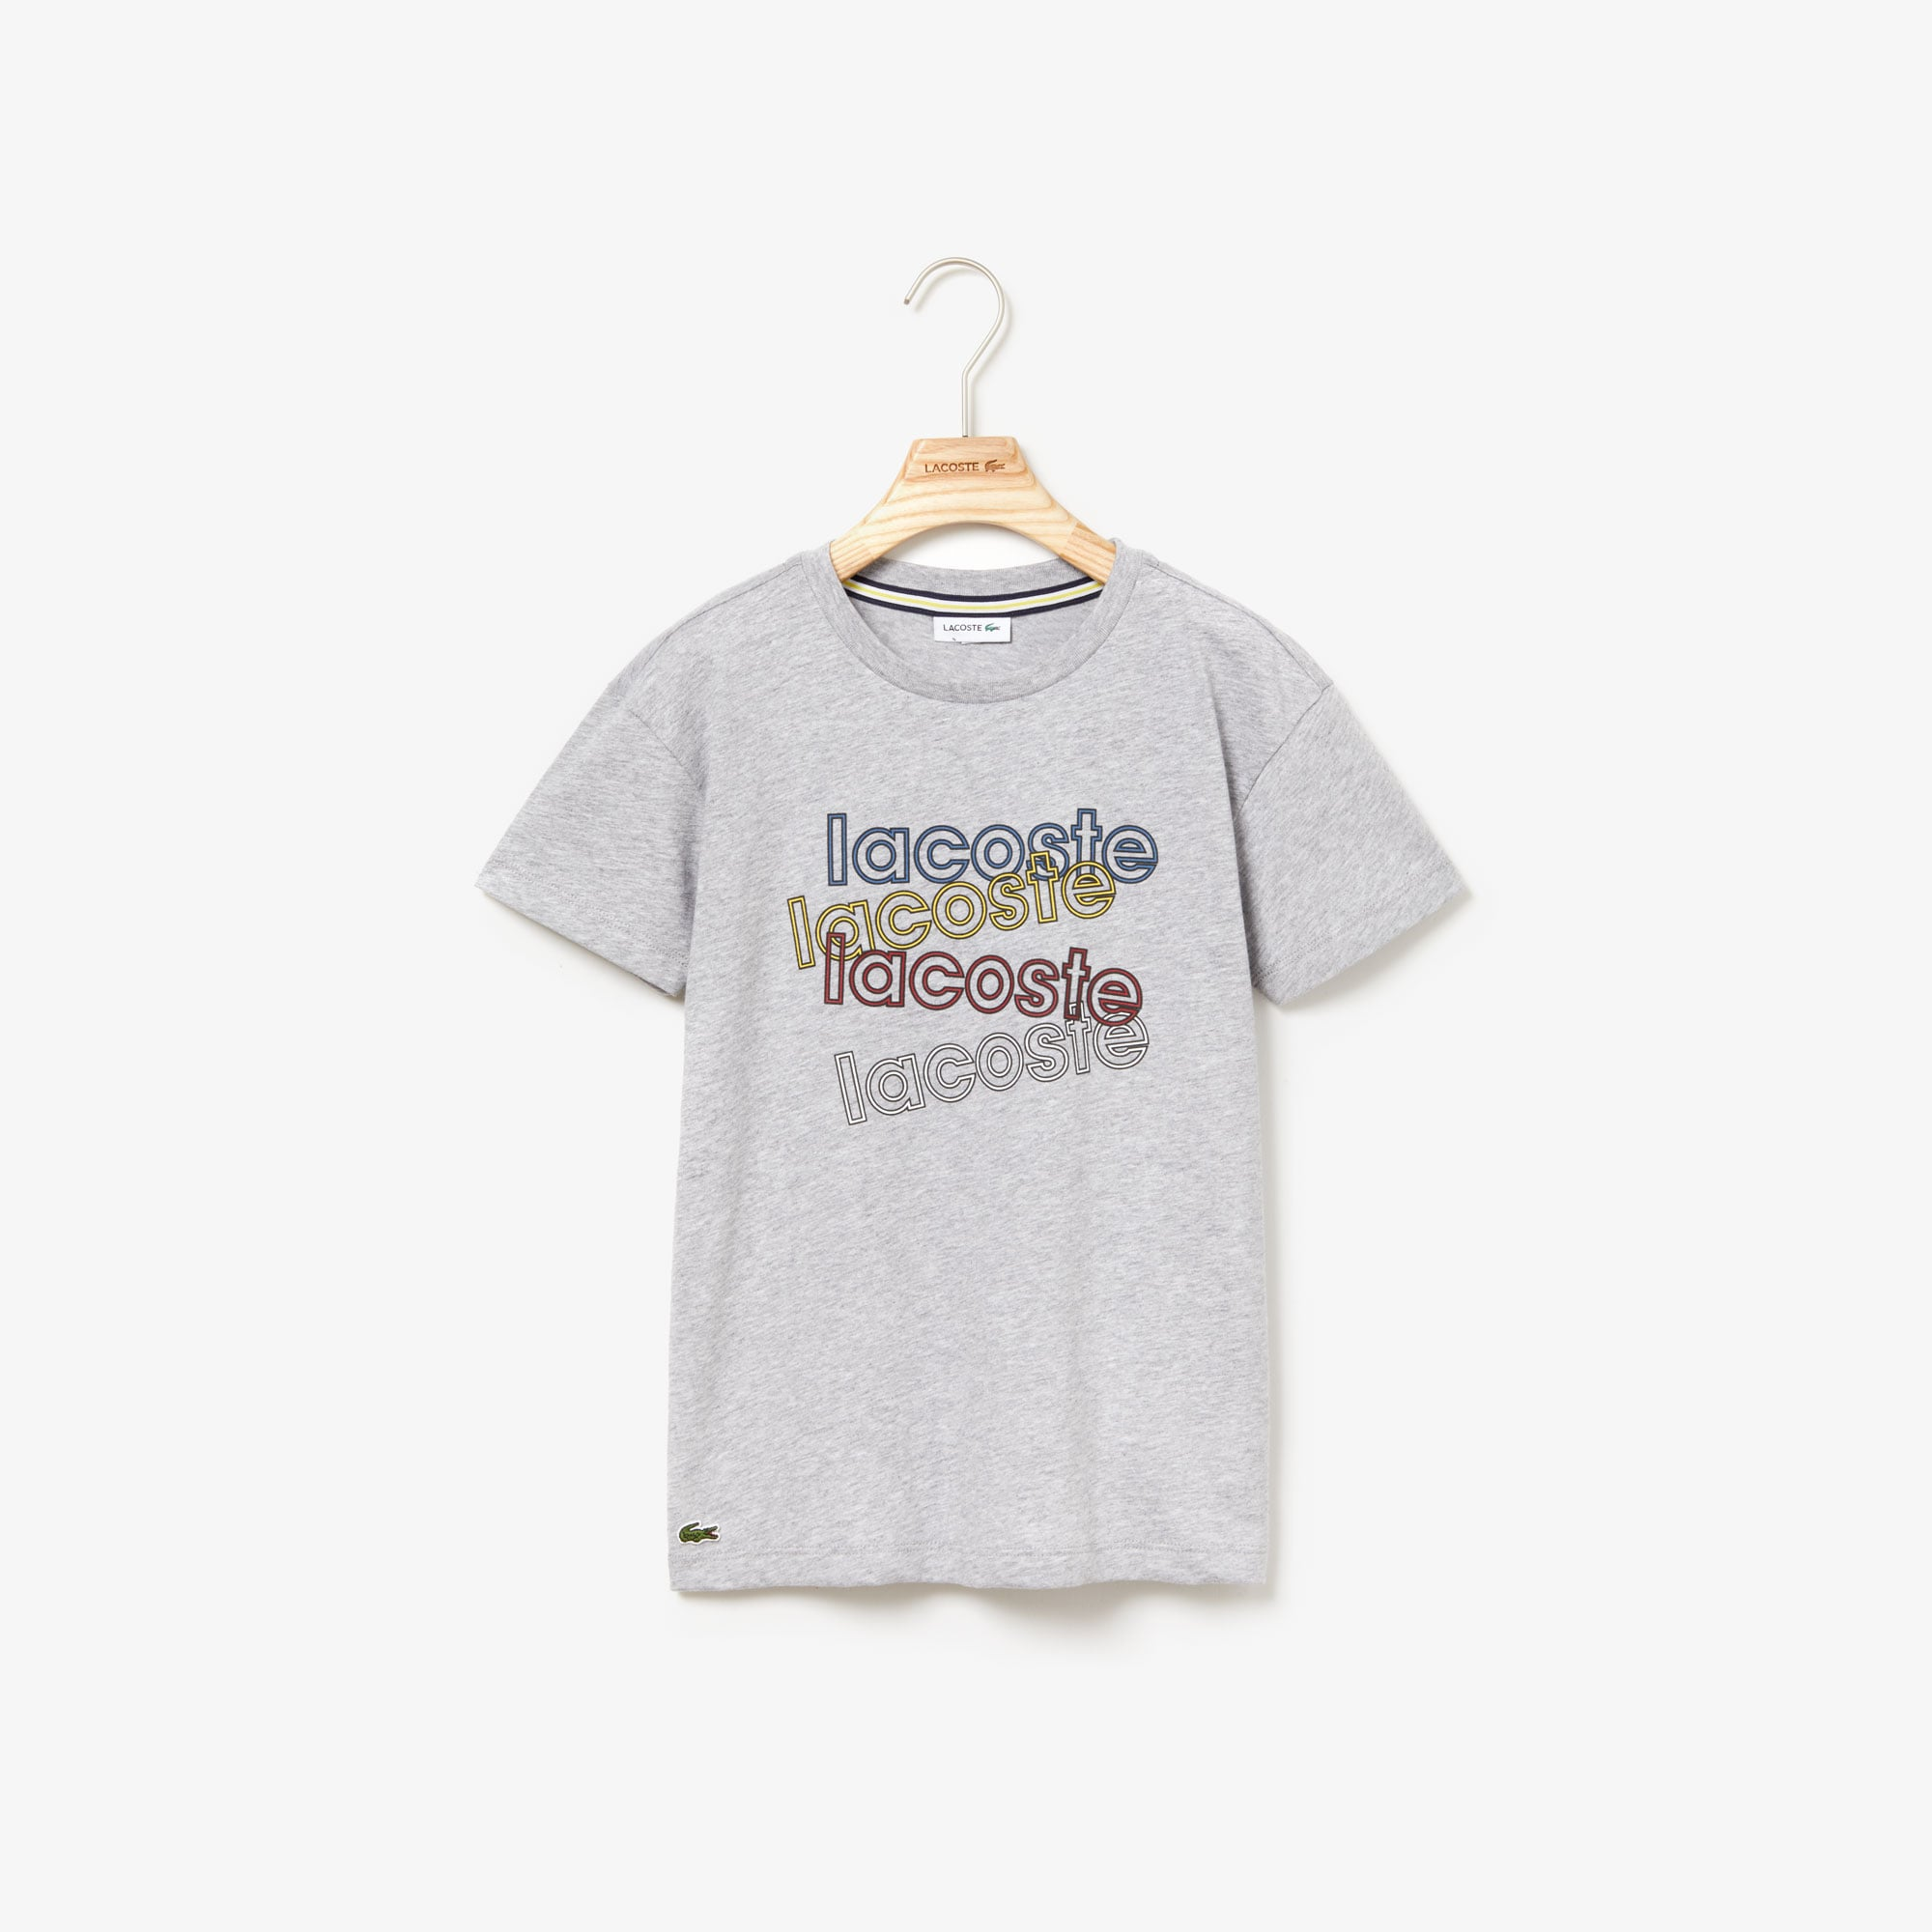 Boys' Crewneck Print Cotton T-shirt